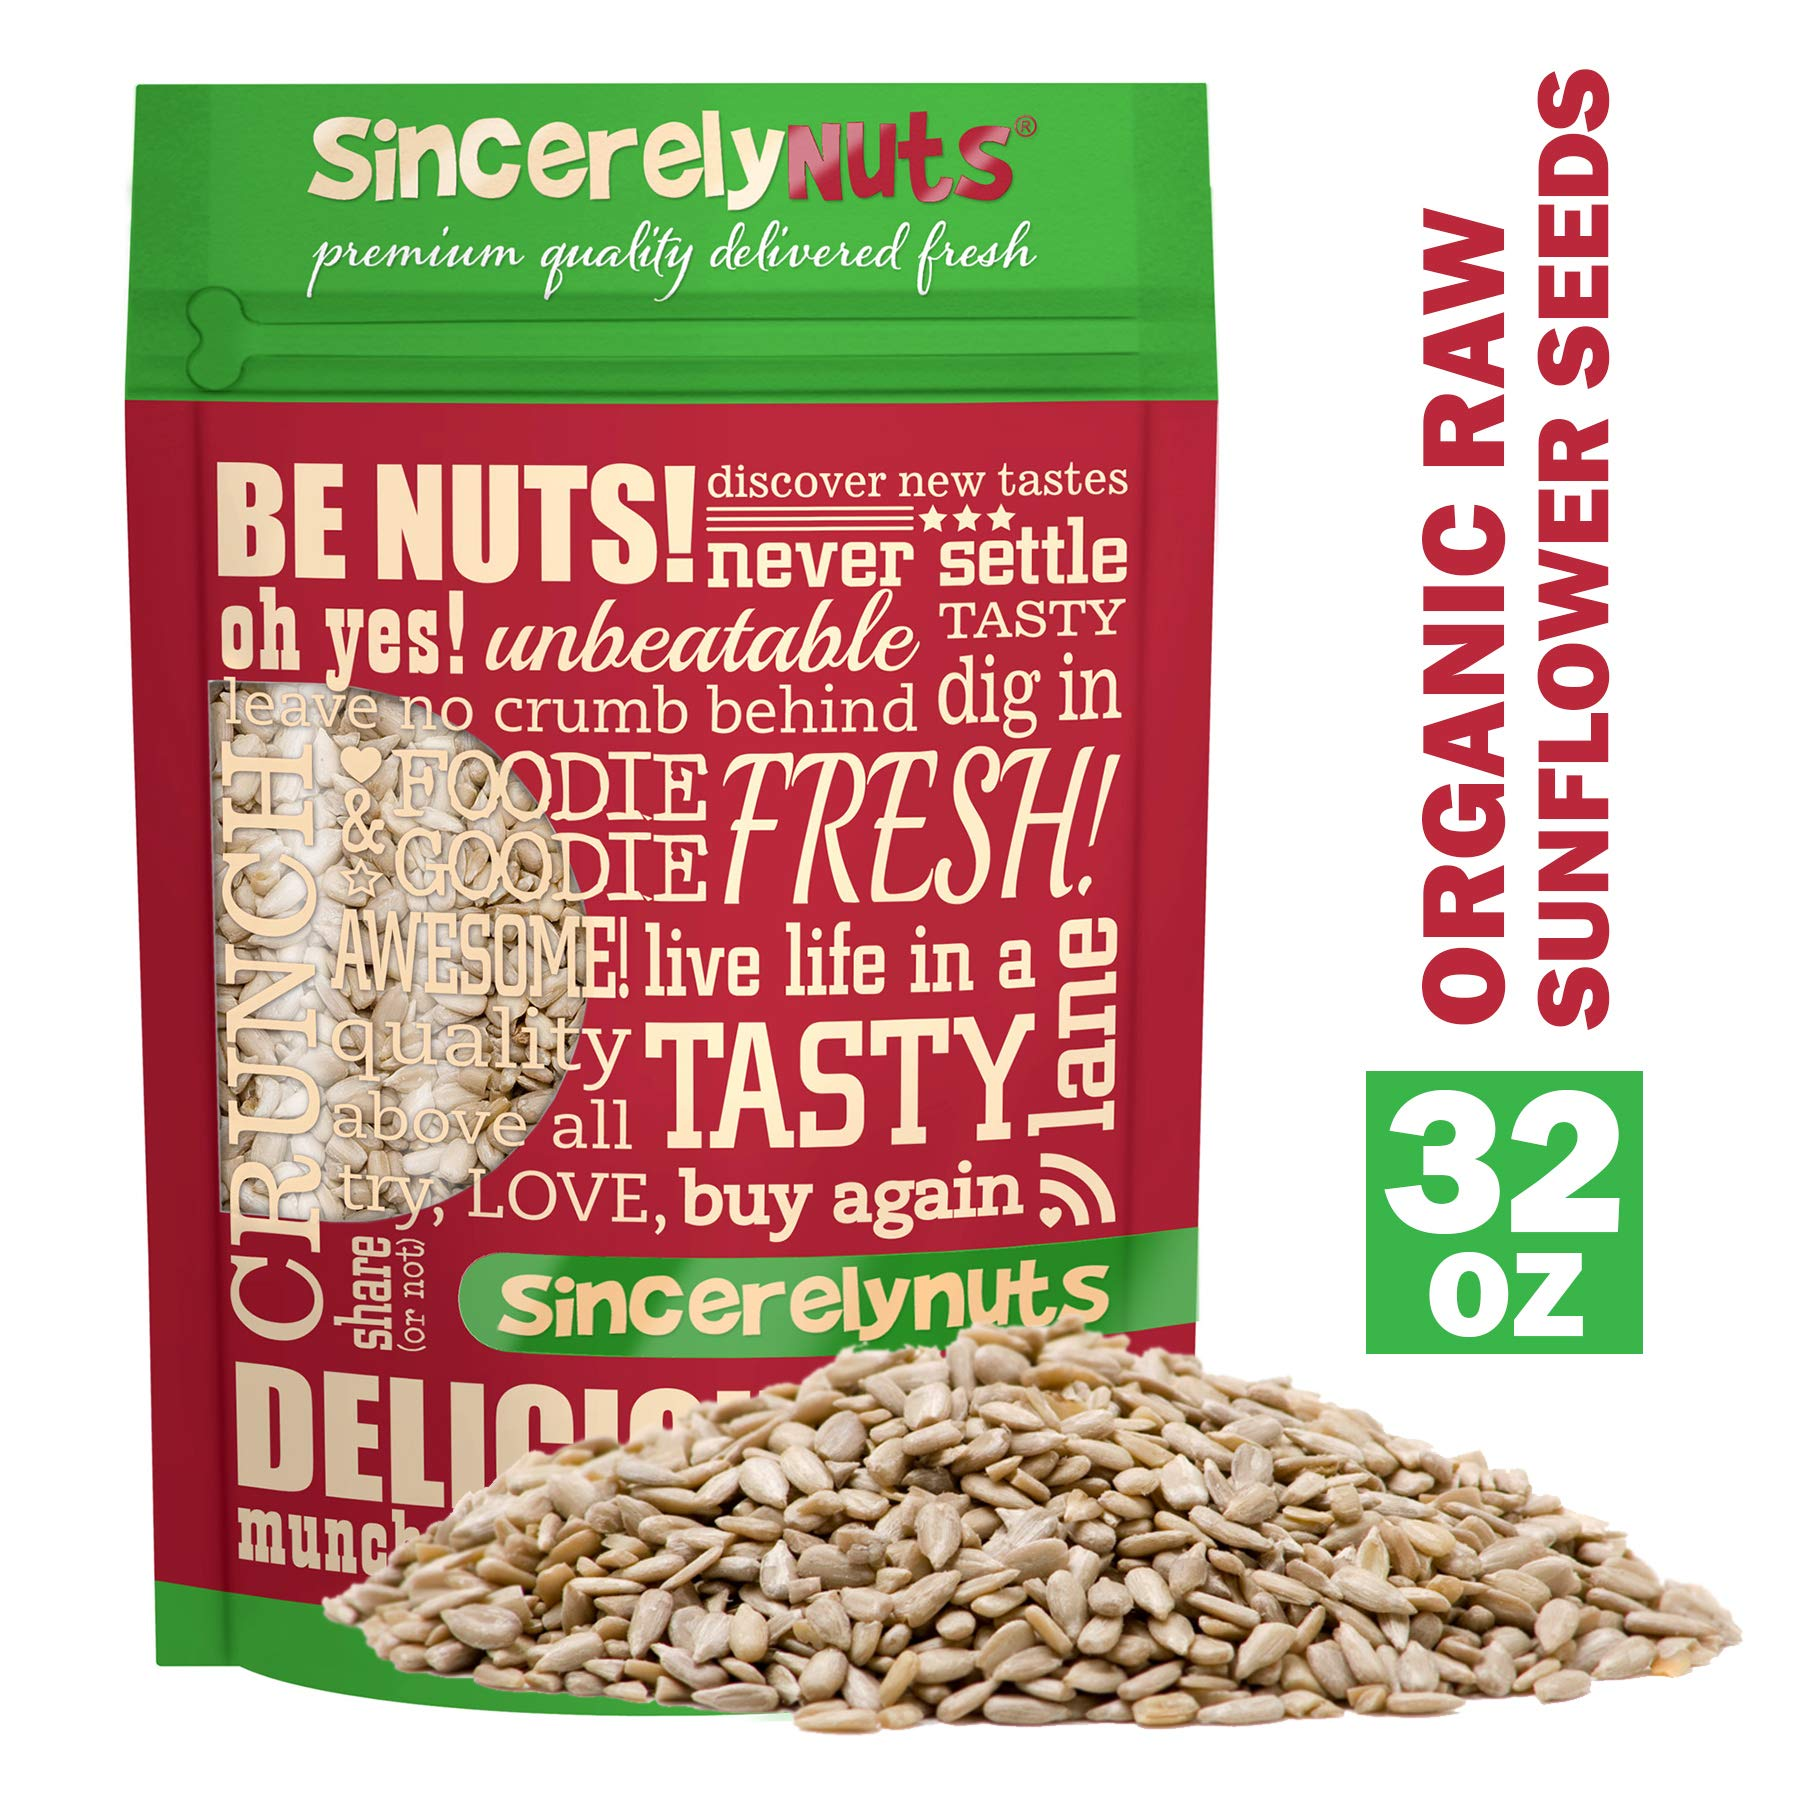 Sincerely Nuts Organic Sunflower Seed Kernels Raw (No Shell) (2lb bag) | Nutritious Antioxidant Rich Superfood Snack | Source of Protein, Fiber, Essential Vitamins & Minerals | Vegan and Gluten Free by Sincerely Nuts